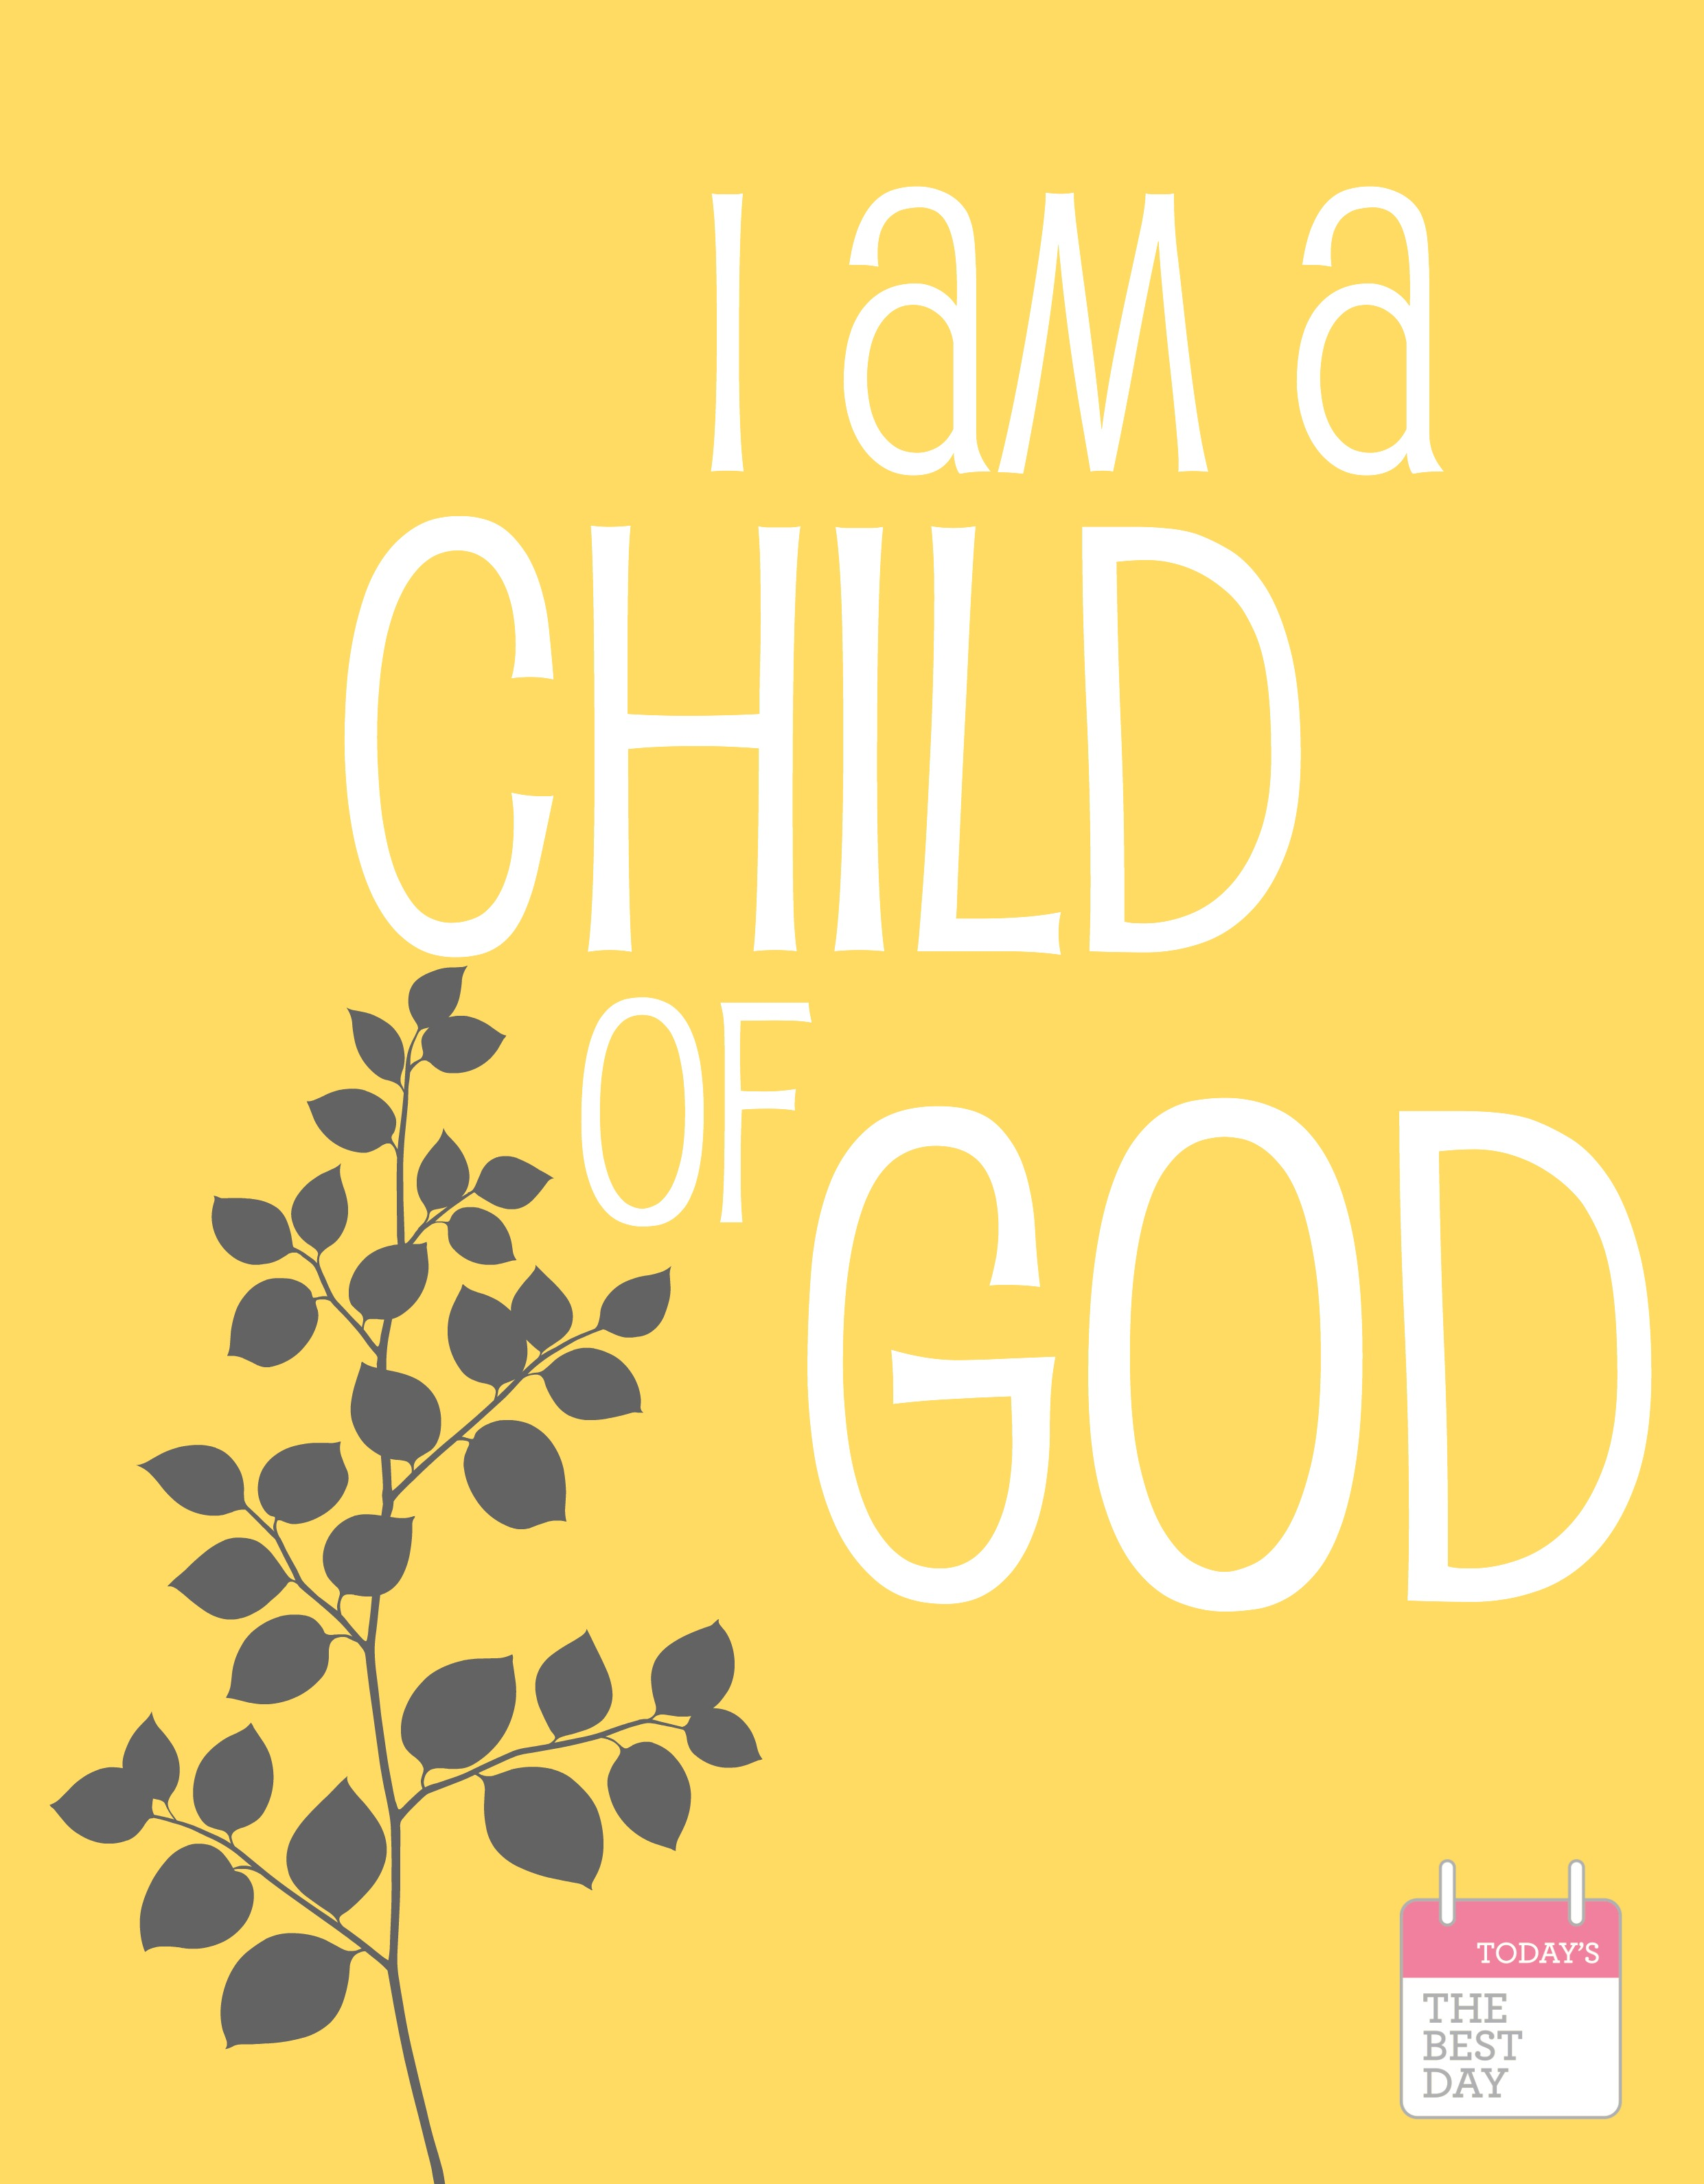 photo regarding I Am a Child of God Printable called i am a little one of god free of charge printable - Todays the Suitable Working day